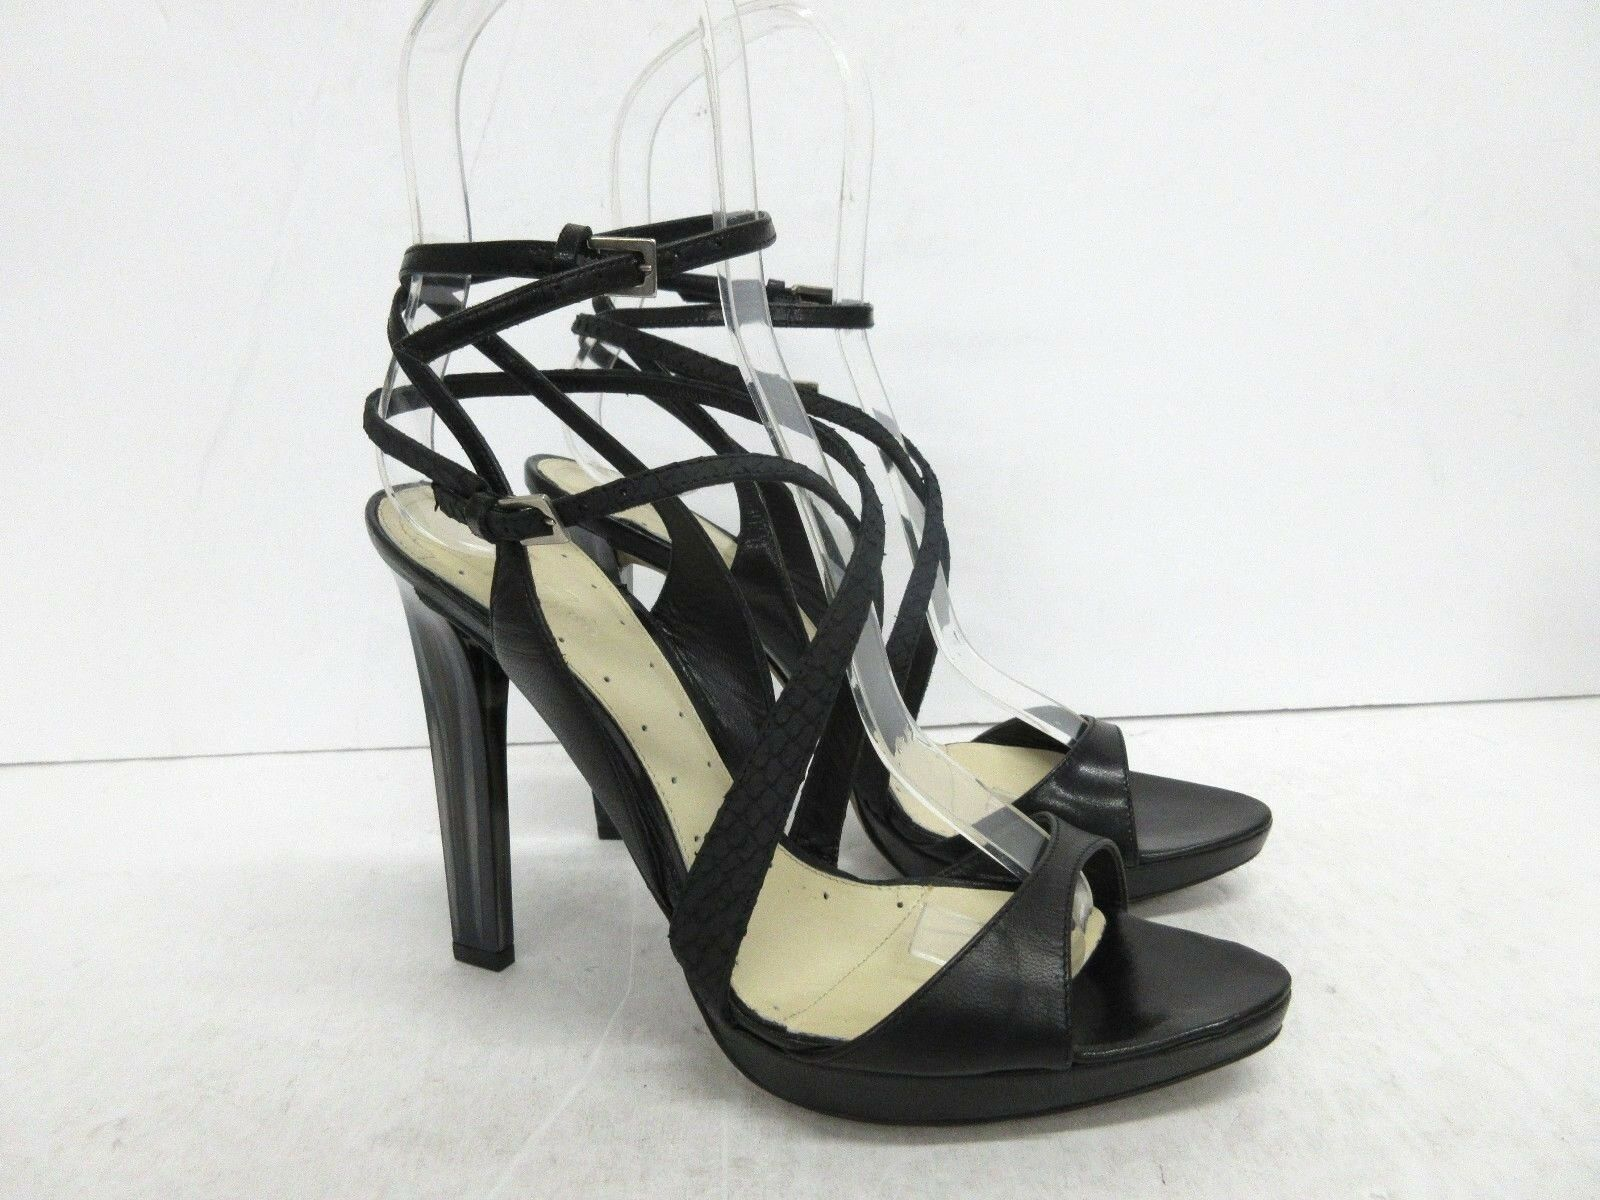 New  MAX AZRIA Strappy Marble Heel Leather Sandal in Black Size  39 EUR